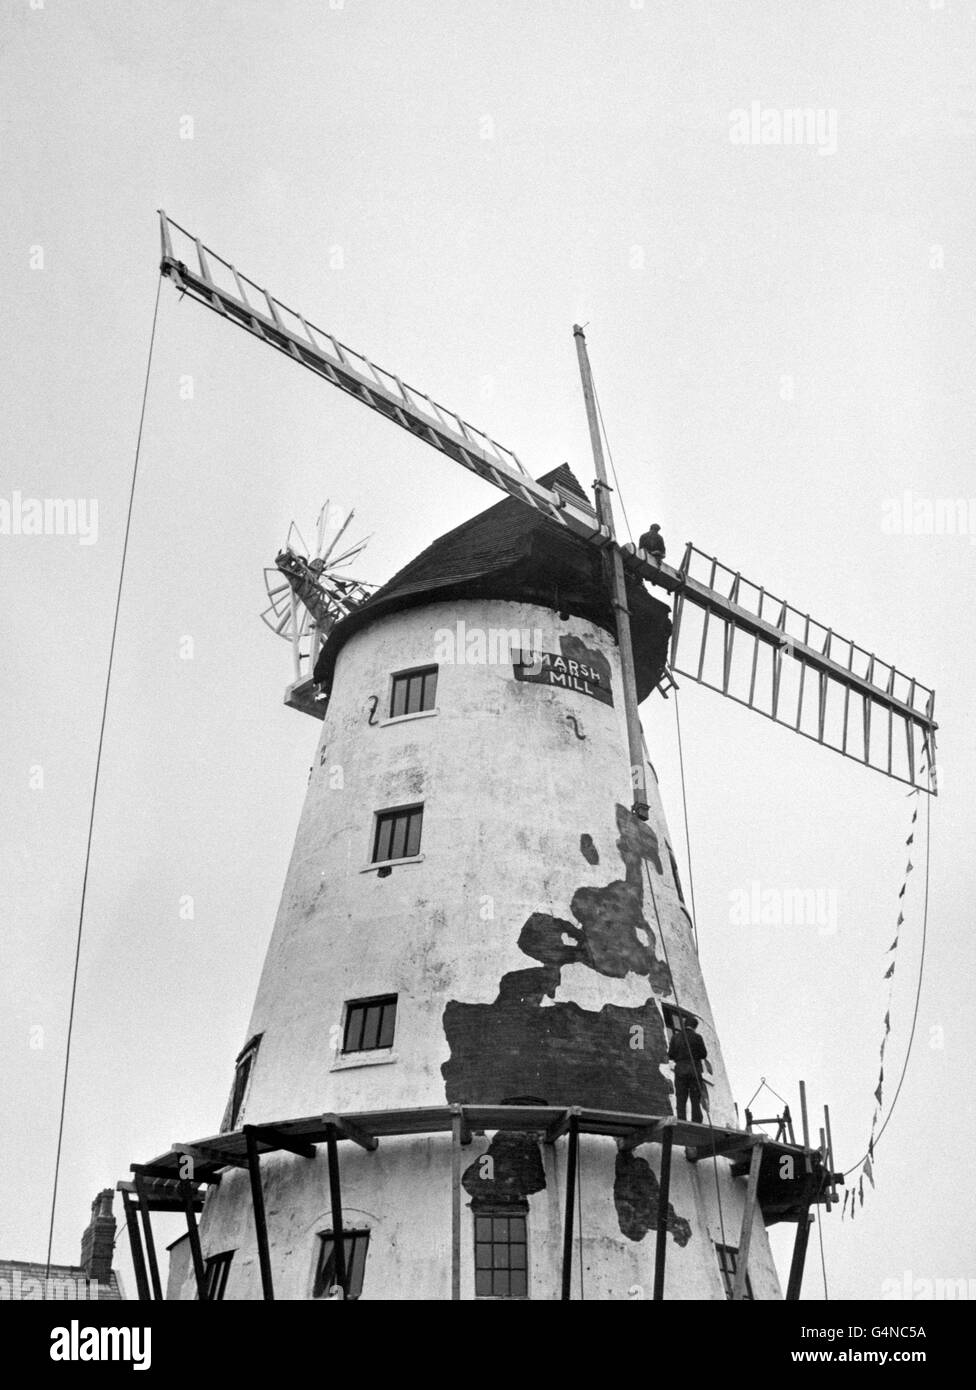 Buildings and Landmarks - Windmills - Thornton-Cleveleys Stock Photo